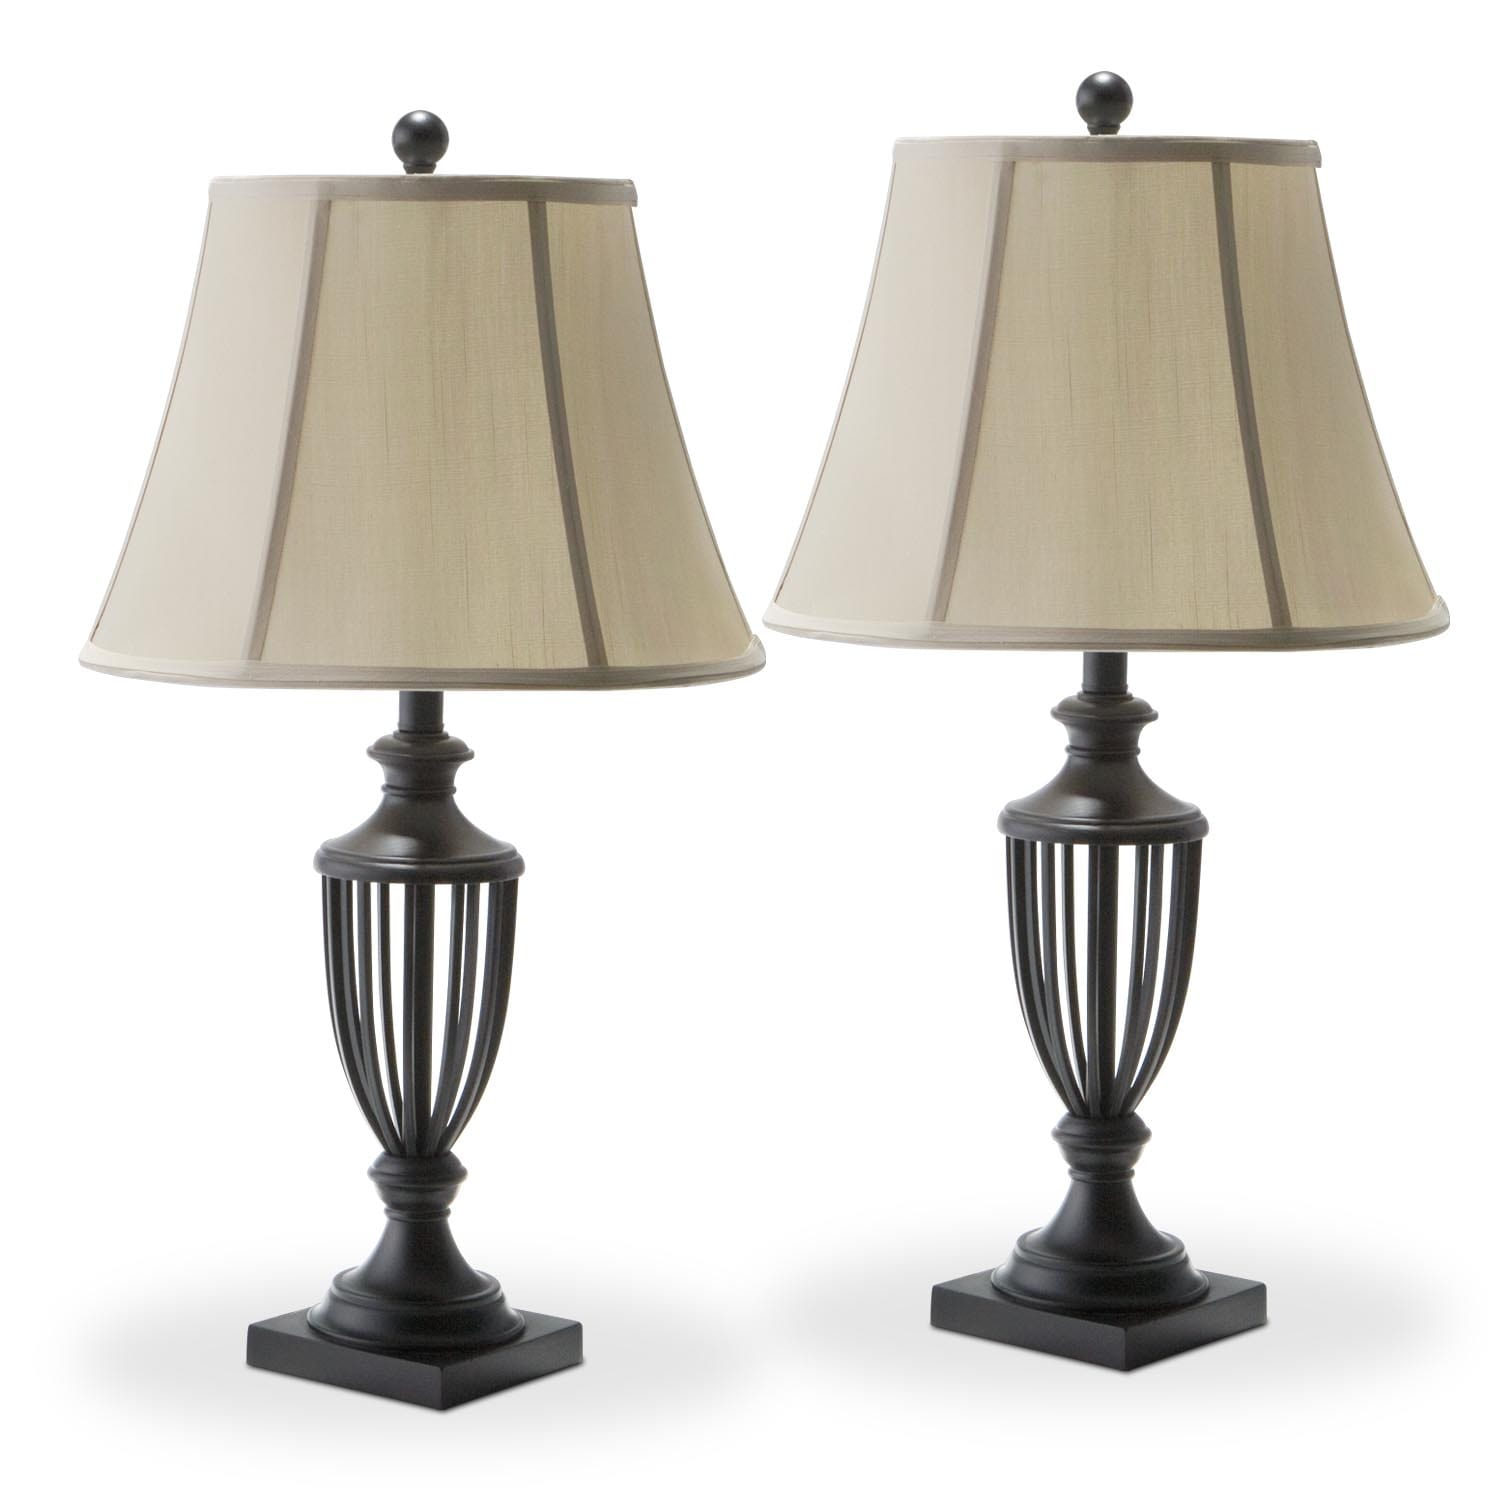 Accent Lighting Of Contemporary Table Lamps For Living: American Signature Furniture